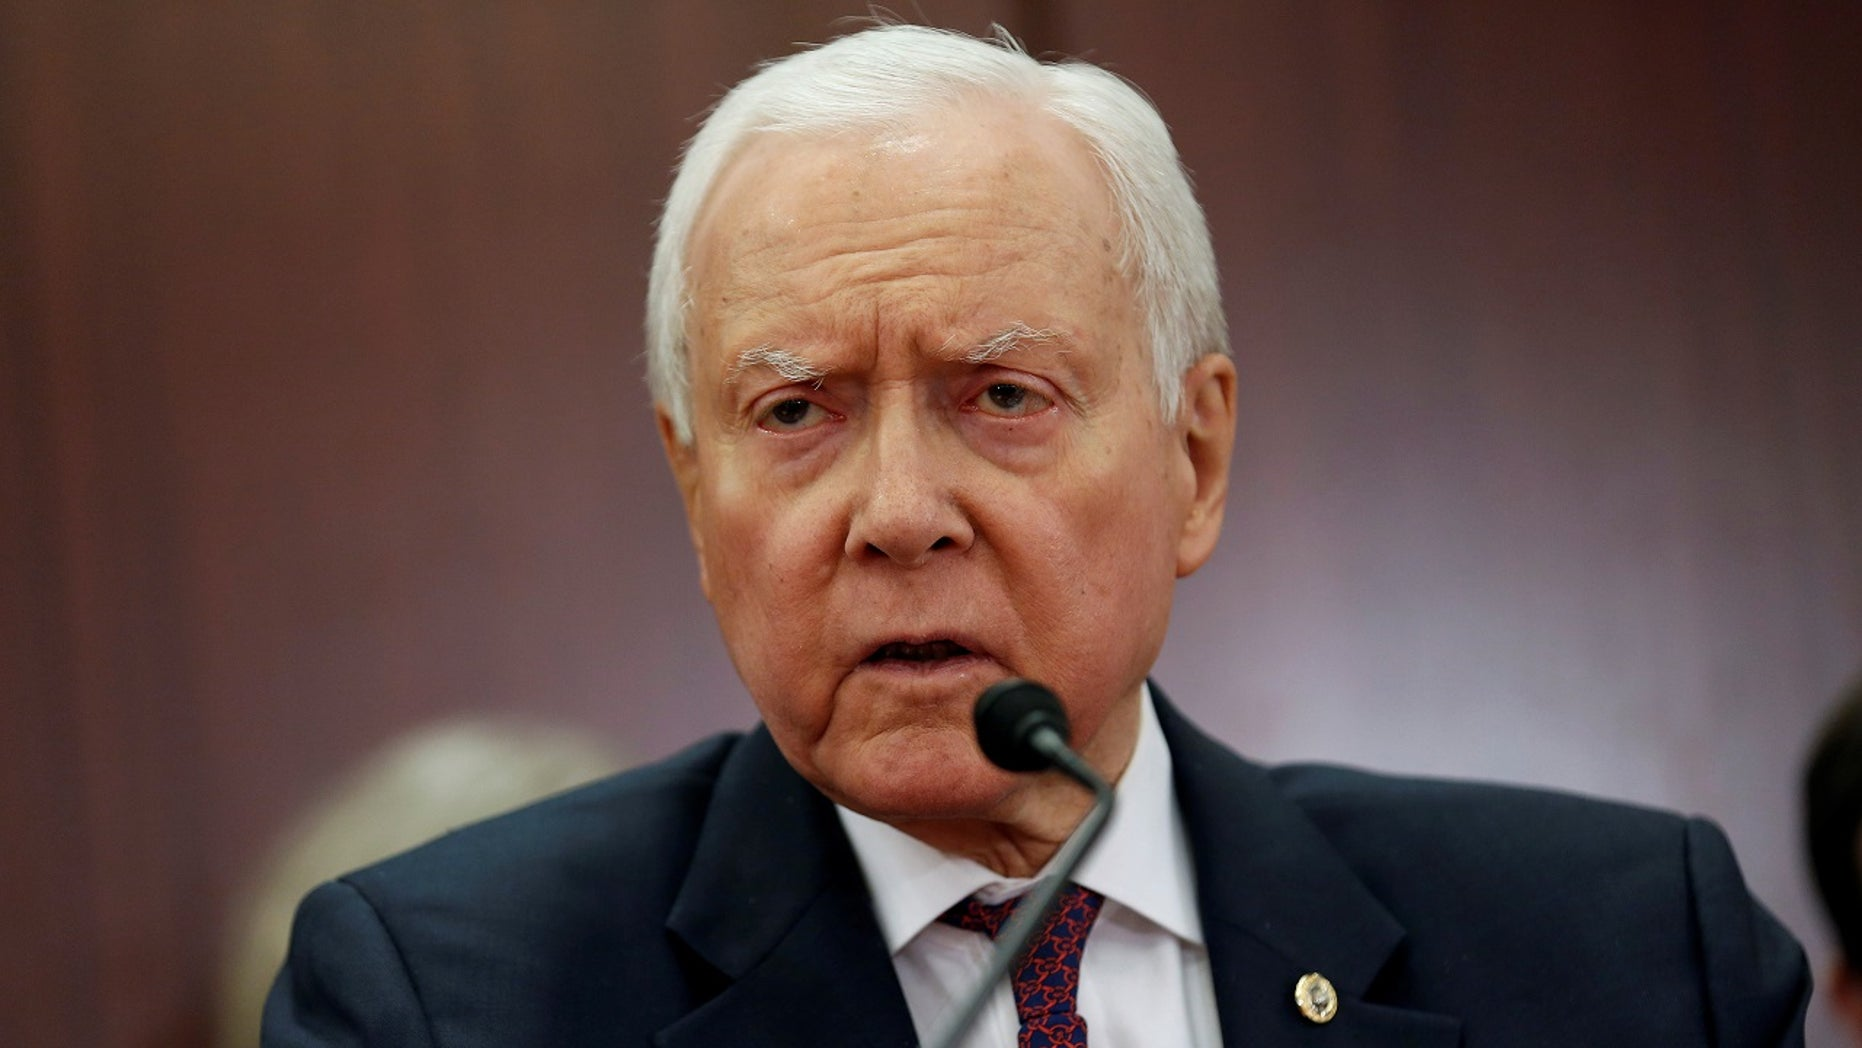 The chairman of the Senate Finance Committee, Orrin Hatch, R-Utah, at a House-Senate conference meeting last month. He will not seek re-election in 2018, he announced.